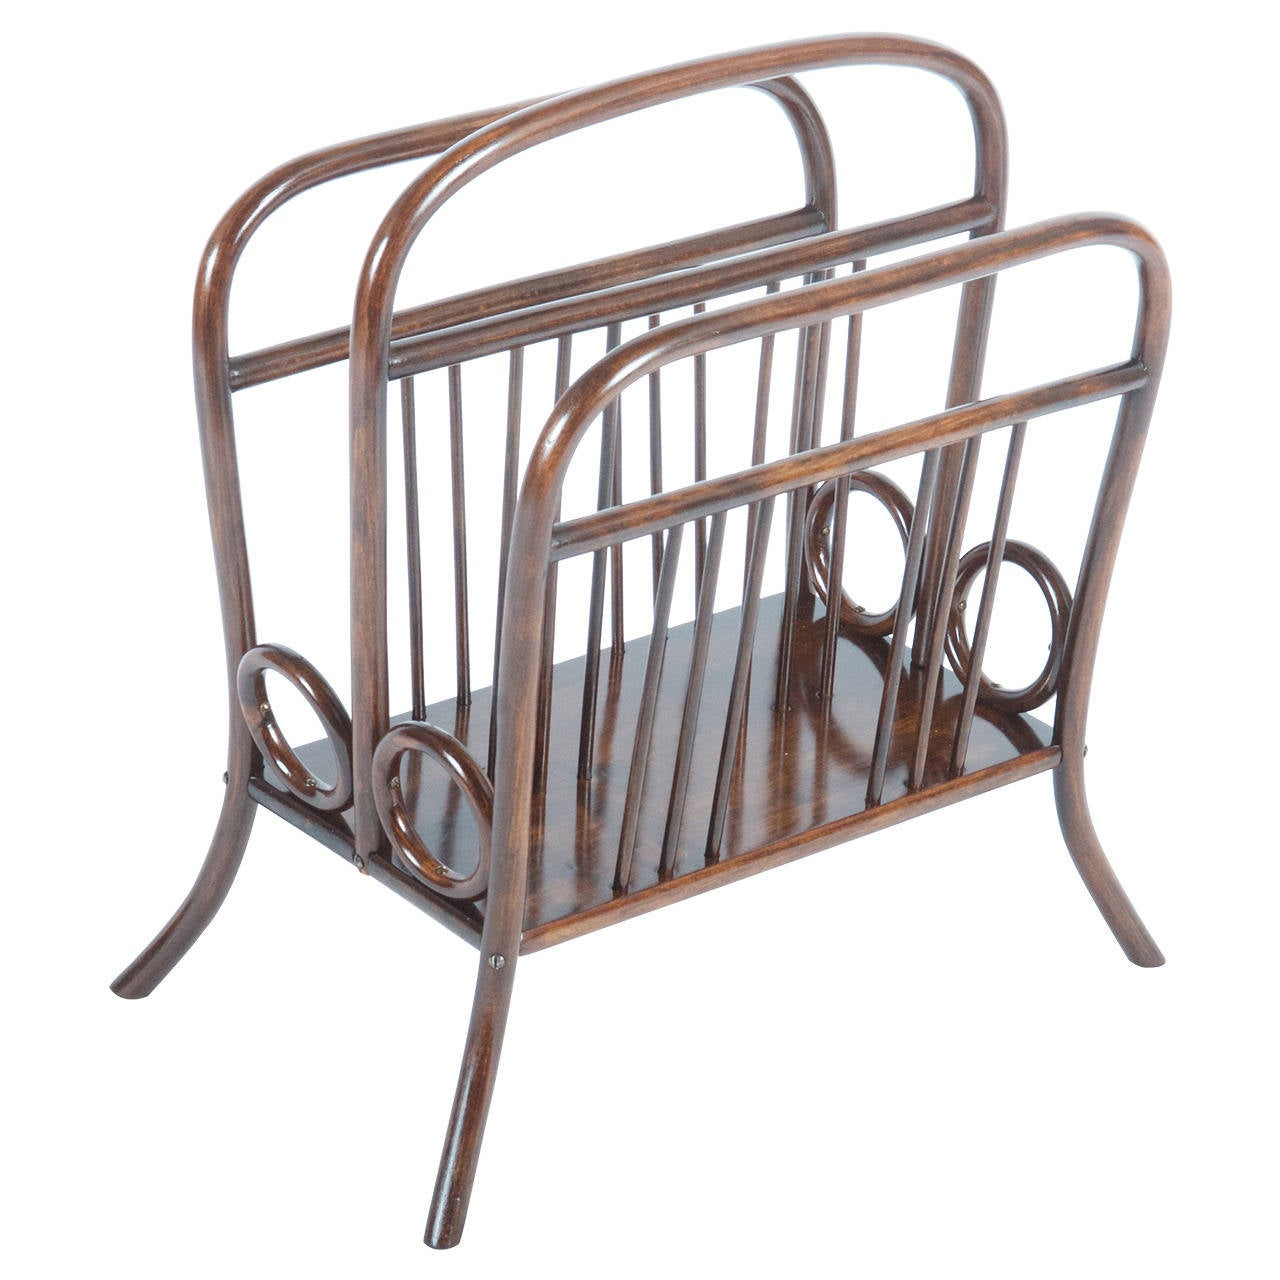 Thonet Bentwood Music or Newspaper Rack, Catalogue Number 33